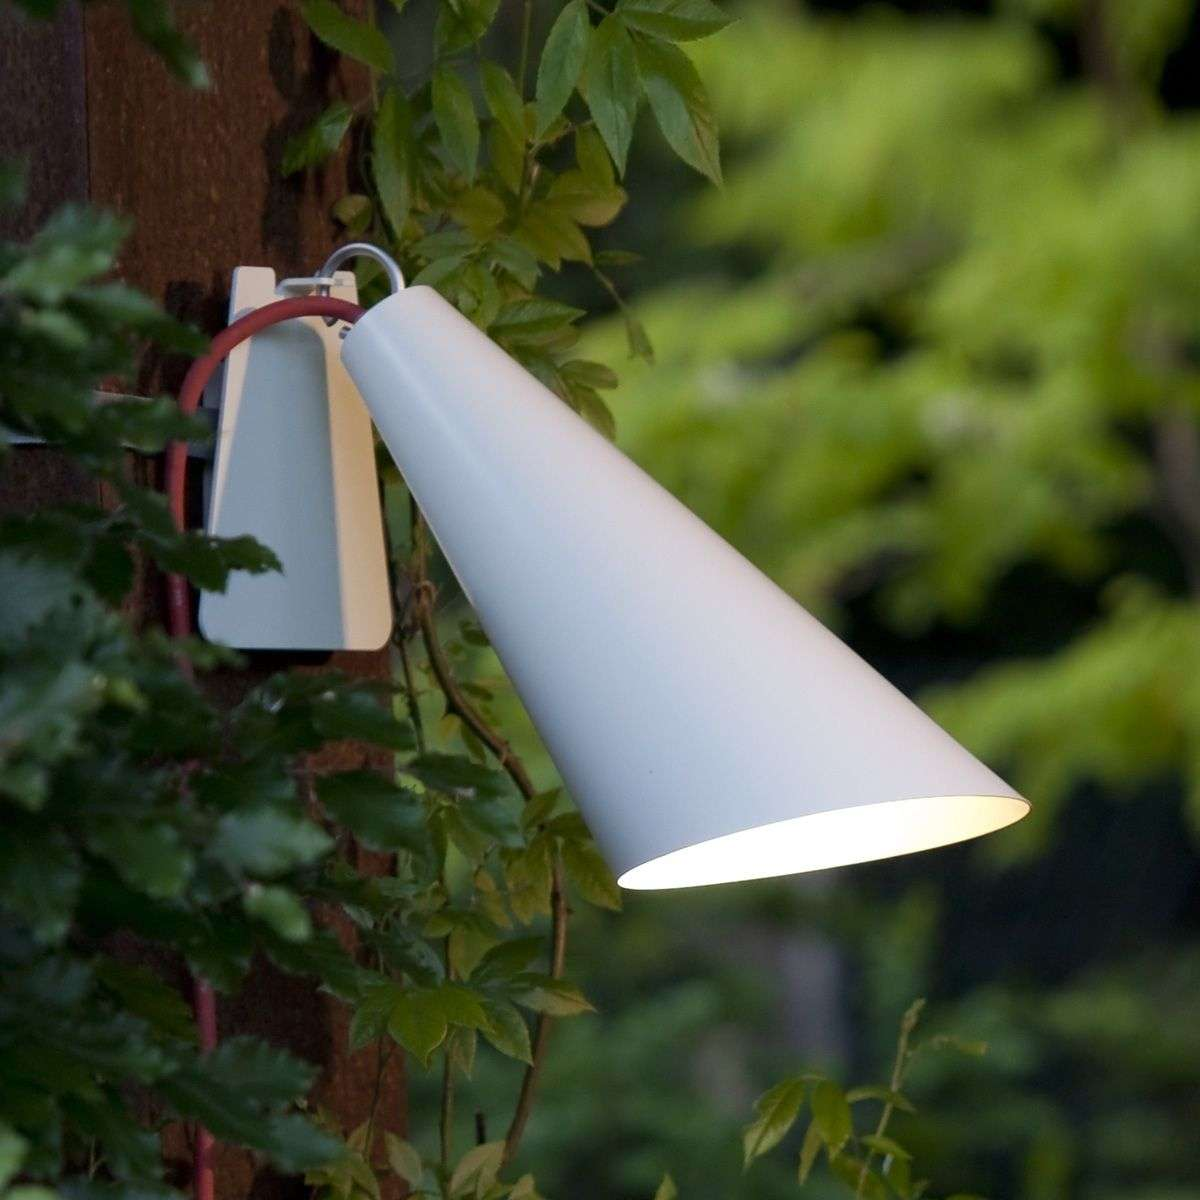 Originele buitenlamp Pit Out met band, wit-2600480-31